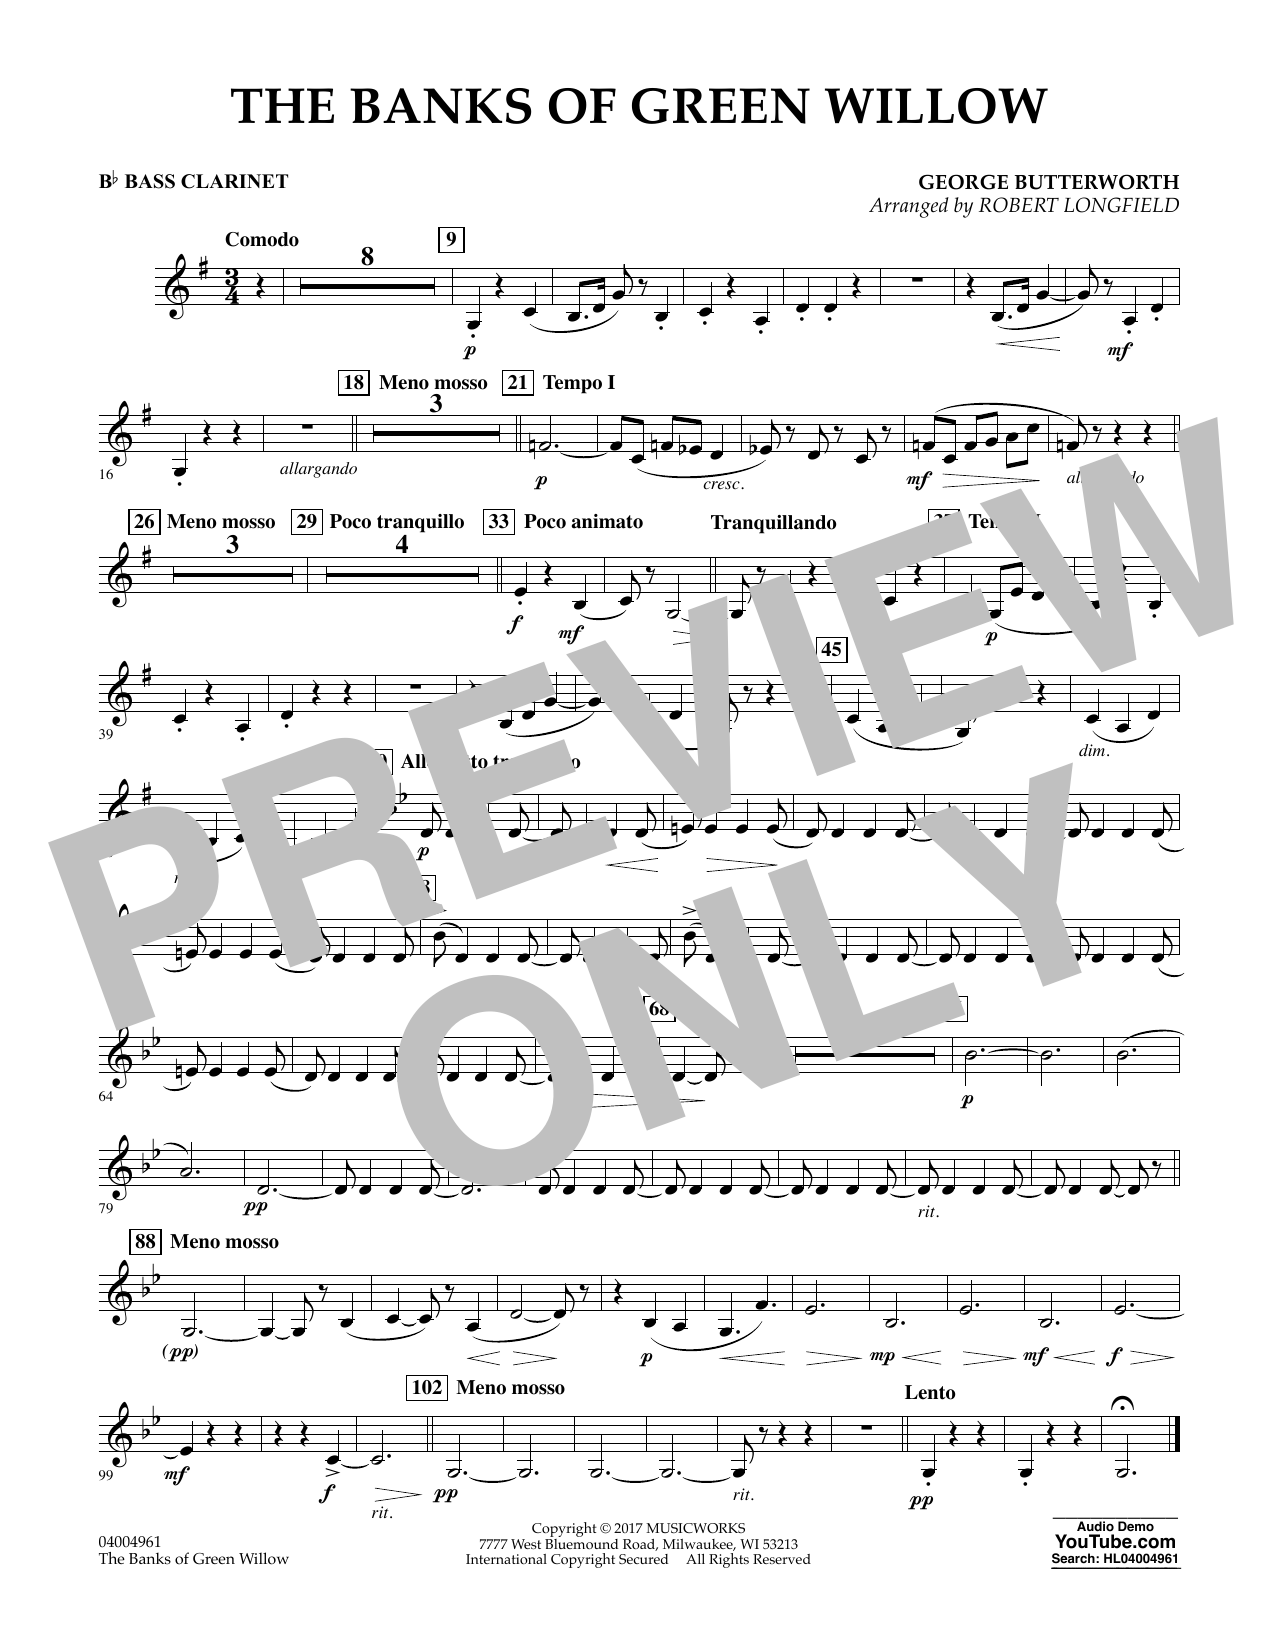 Robert Longfield The Banks of Green Willow - Bb Bass Clarinet sheet music notes and chords. Download Printable PDF.